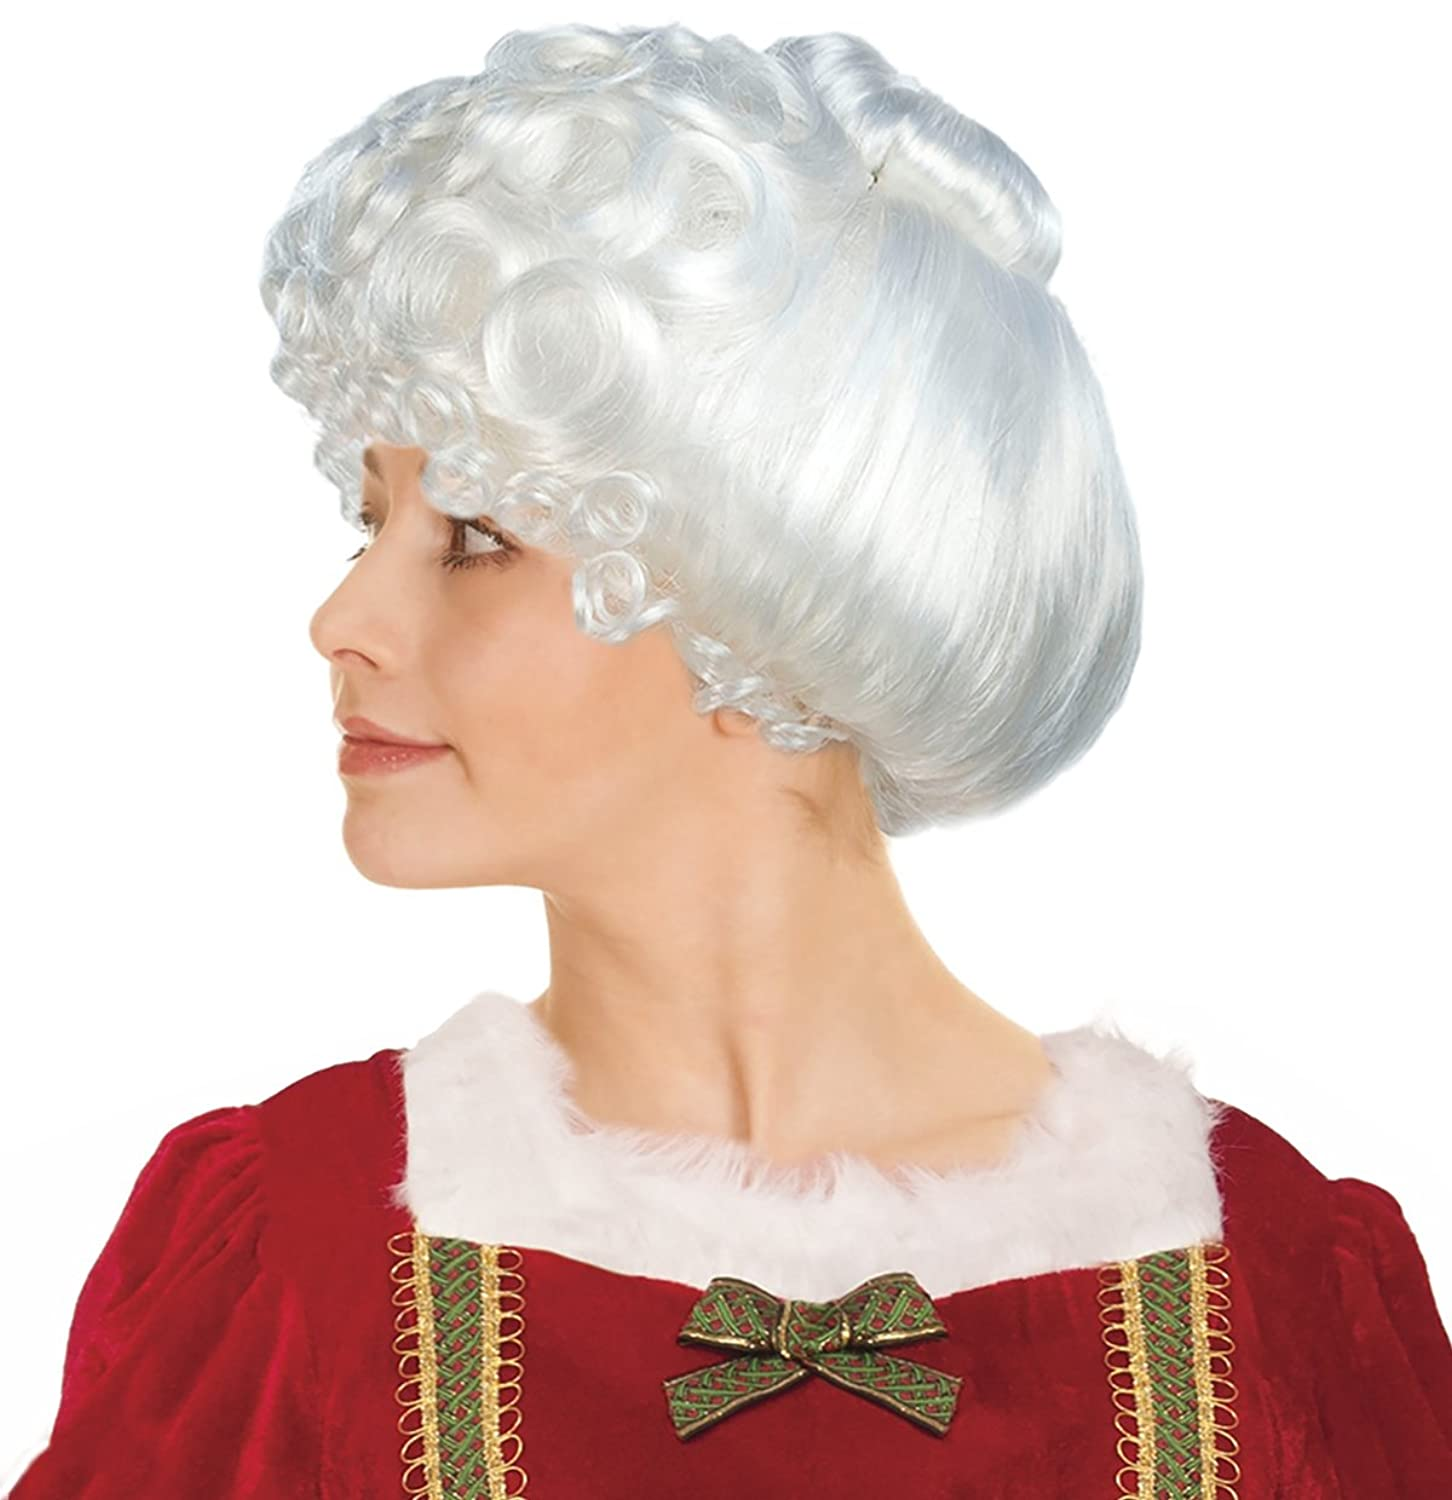 Women's Deluxe White Mrs. Clause Costume Wig